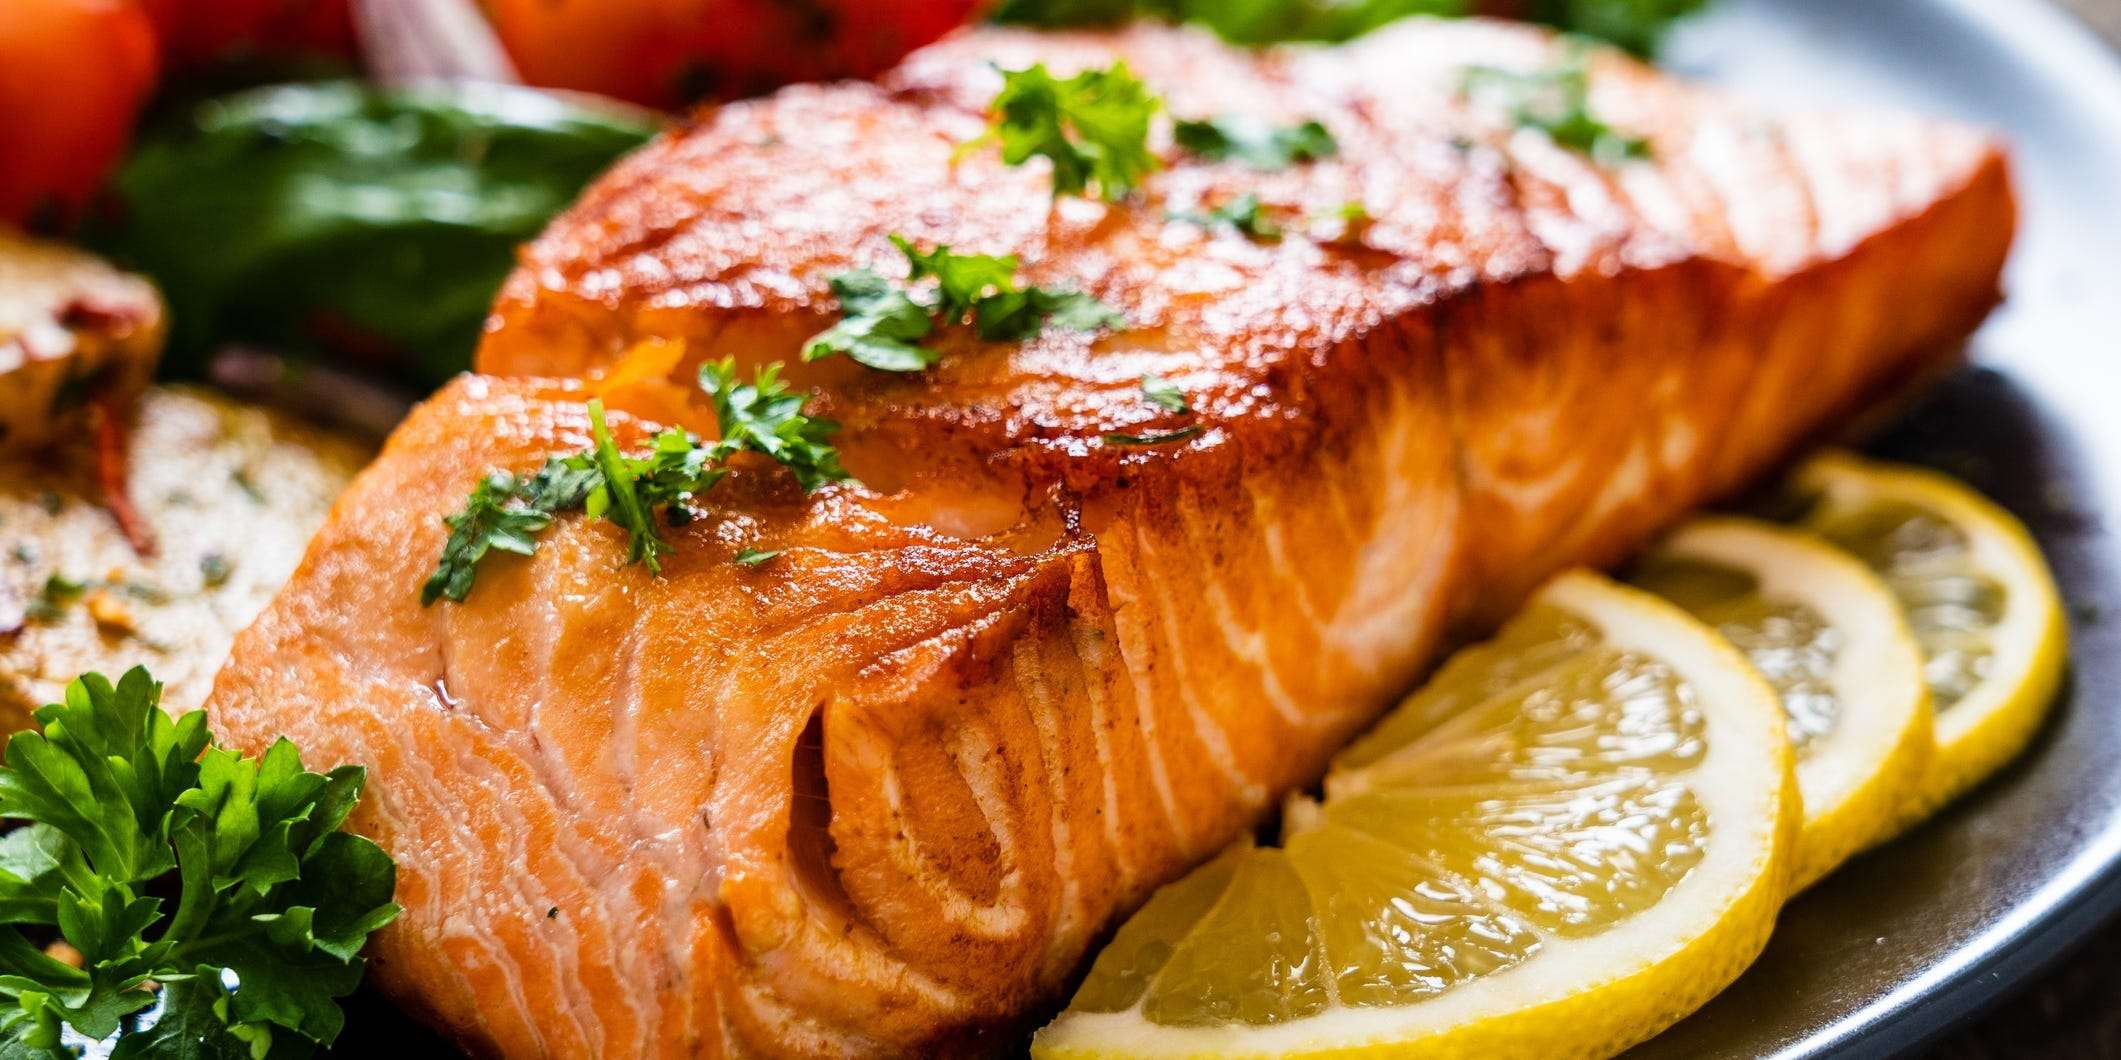 10 delicious low-carb foods that are also healthy, according to dietitians